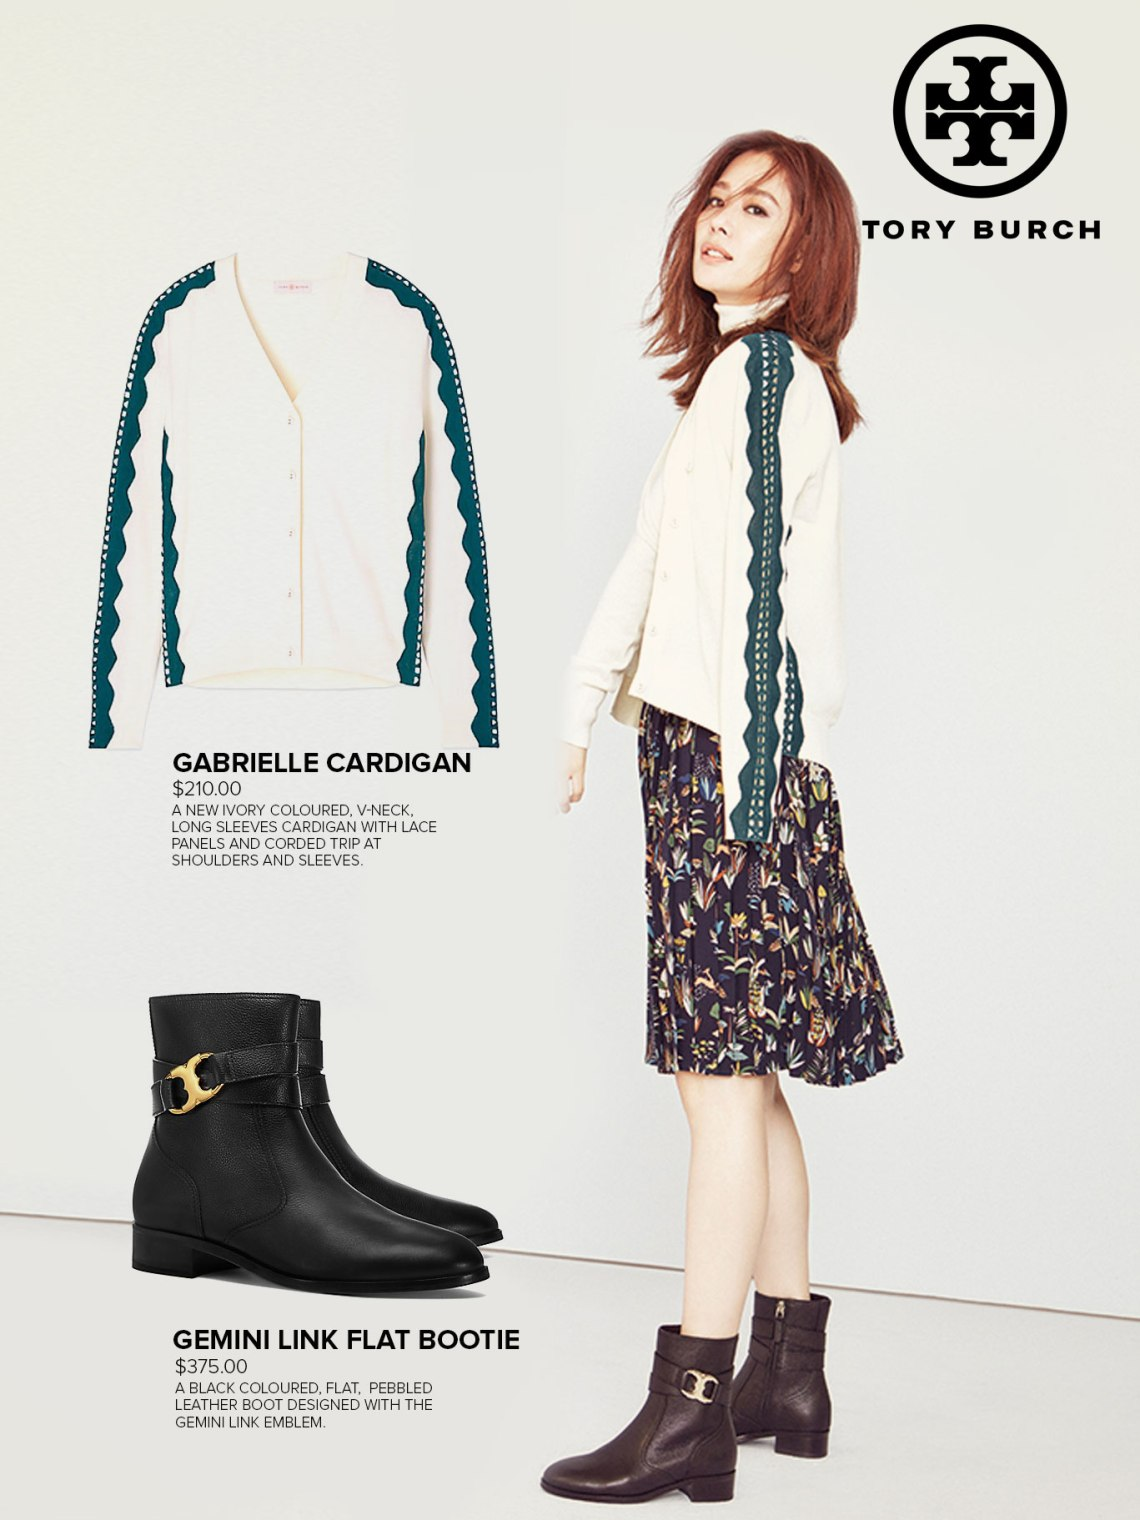 kim-hyun-joo-models-tory-burch-for-elle-02-drama-chronicles